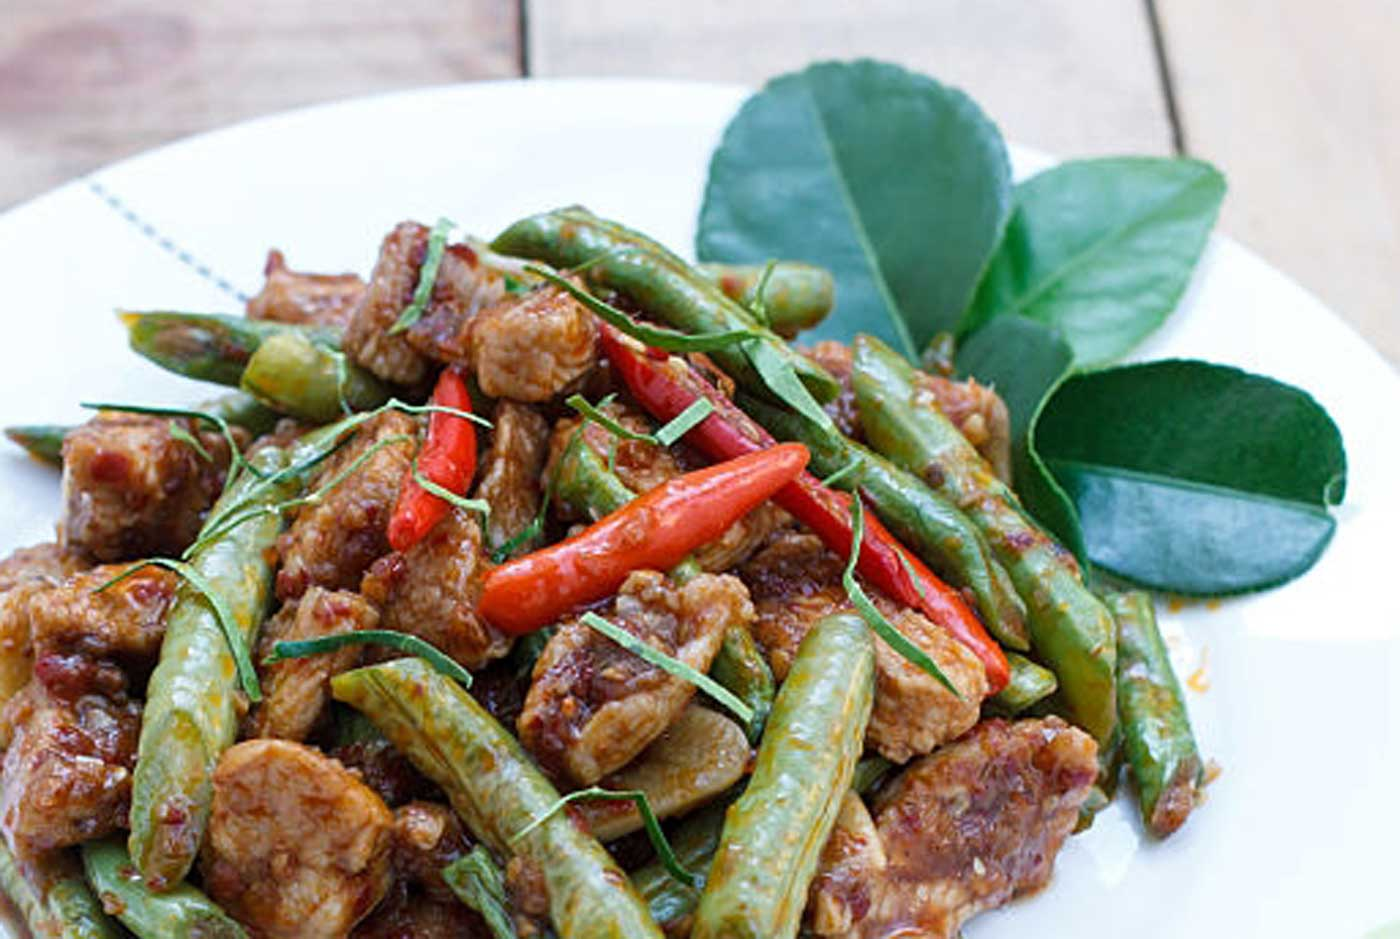 Pork fried in red curry paste